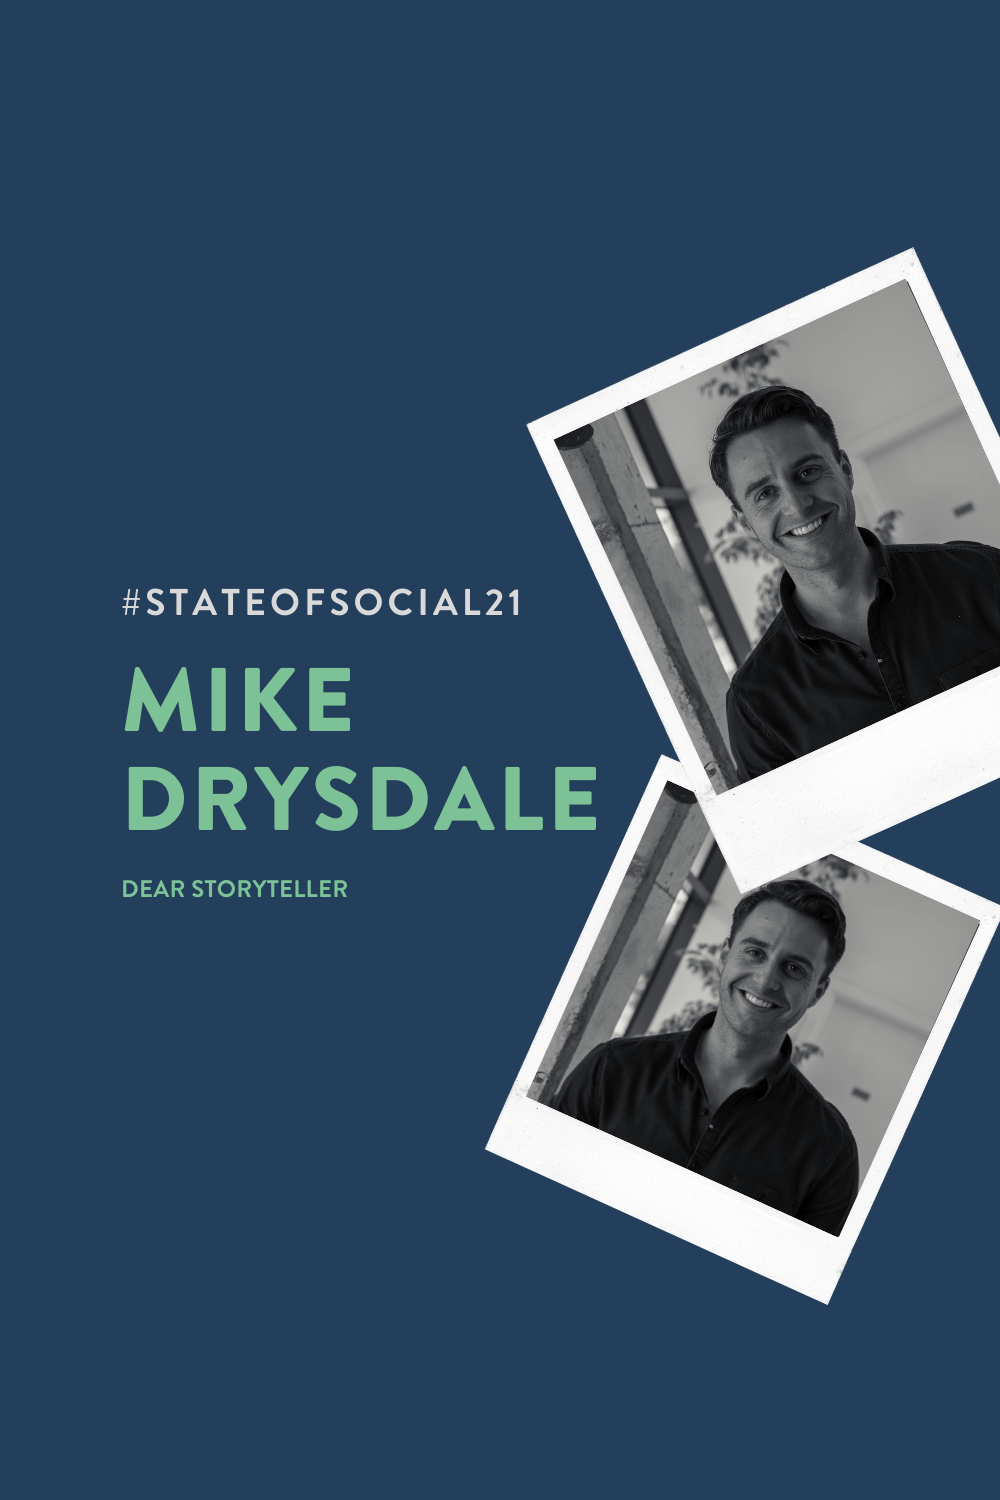 MIKE DRYSDALE